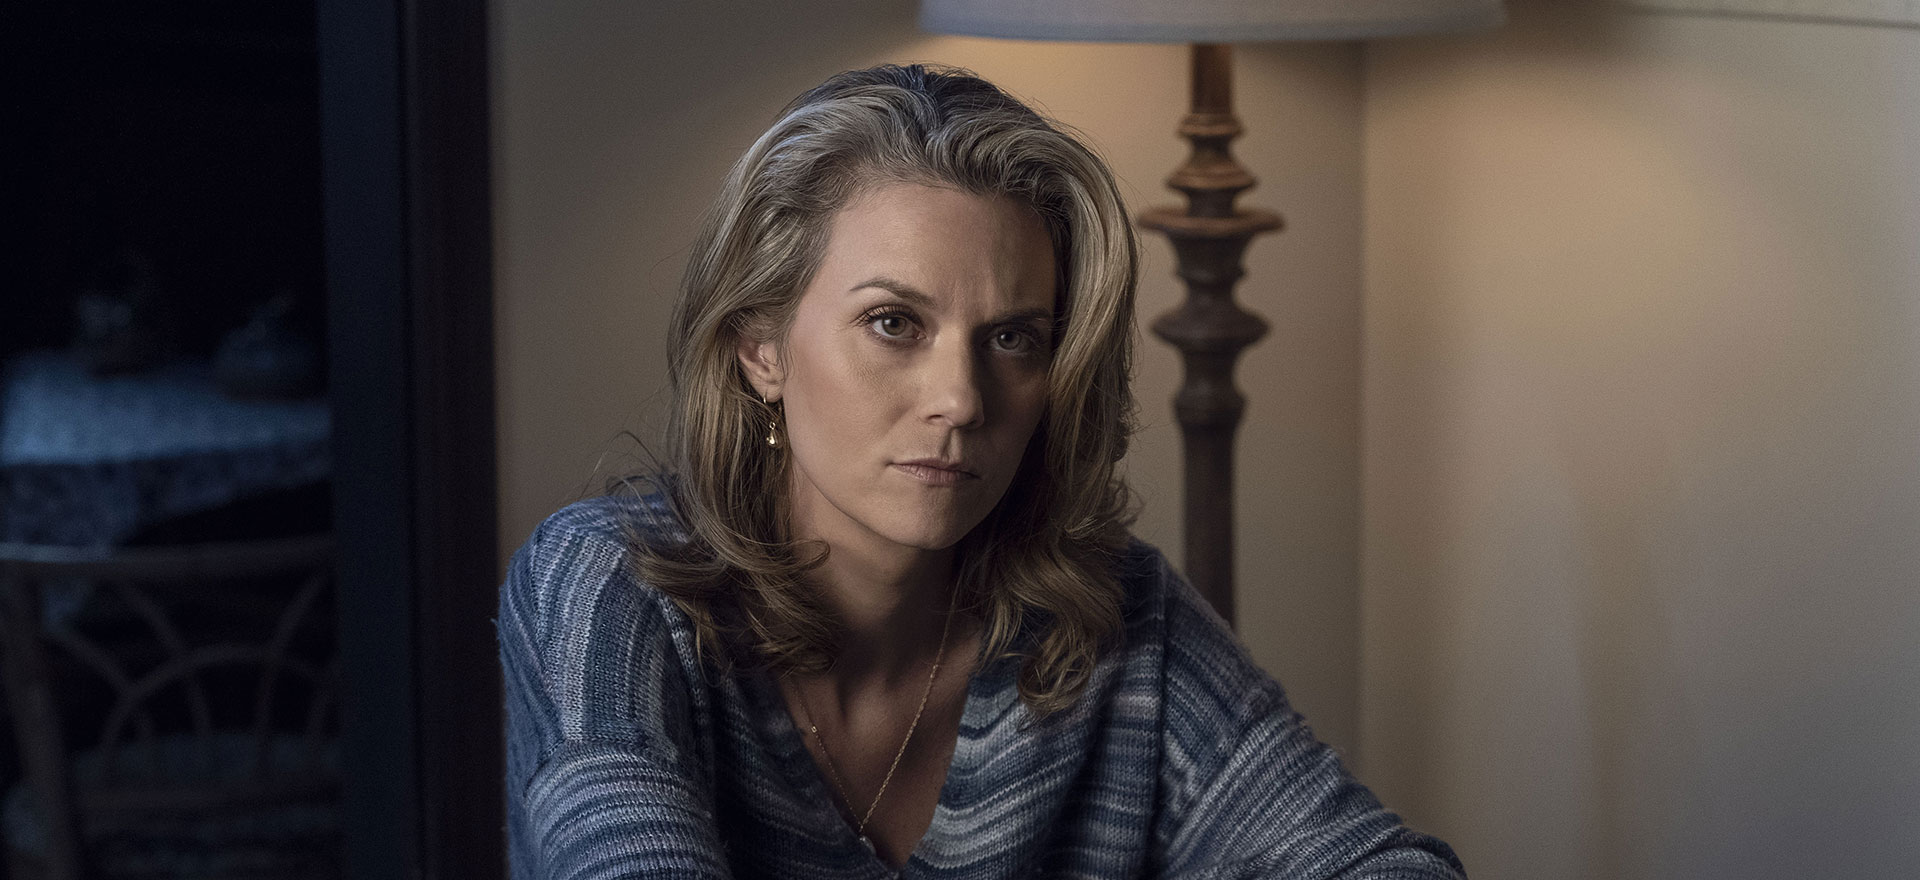 The Walking Dead Q&A — Hilarie Burton Morgan on Why Lucille Would Love Lucille the Bat